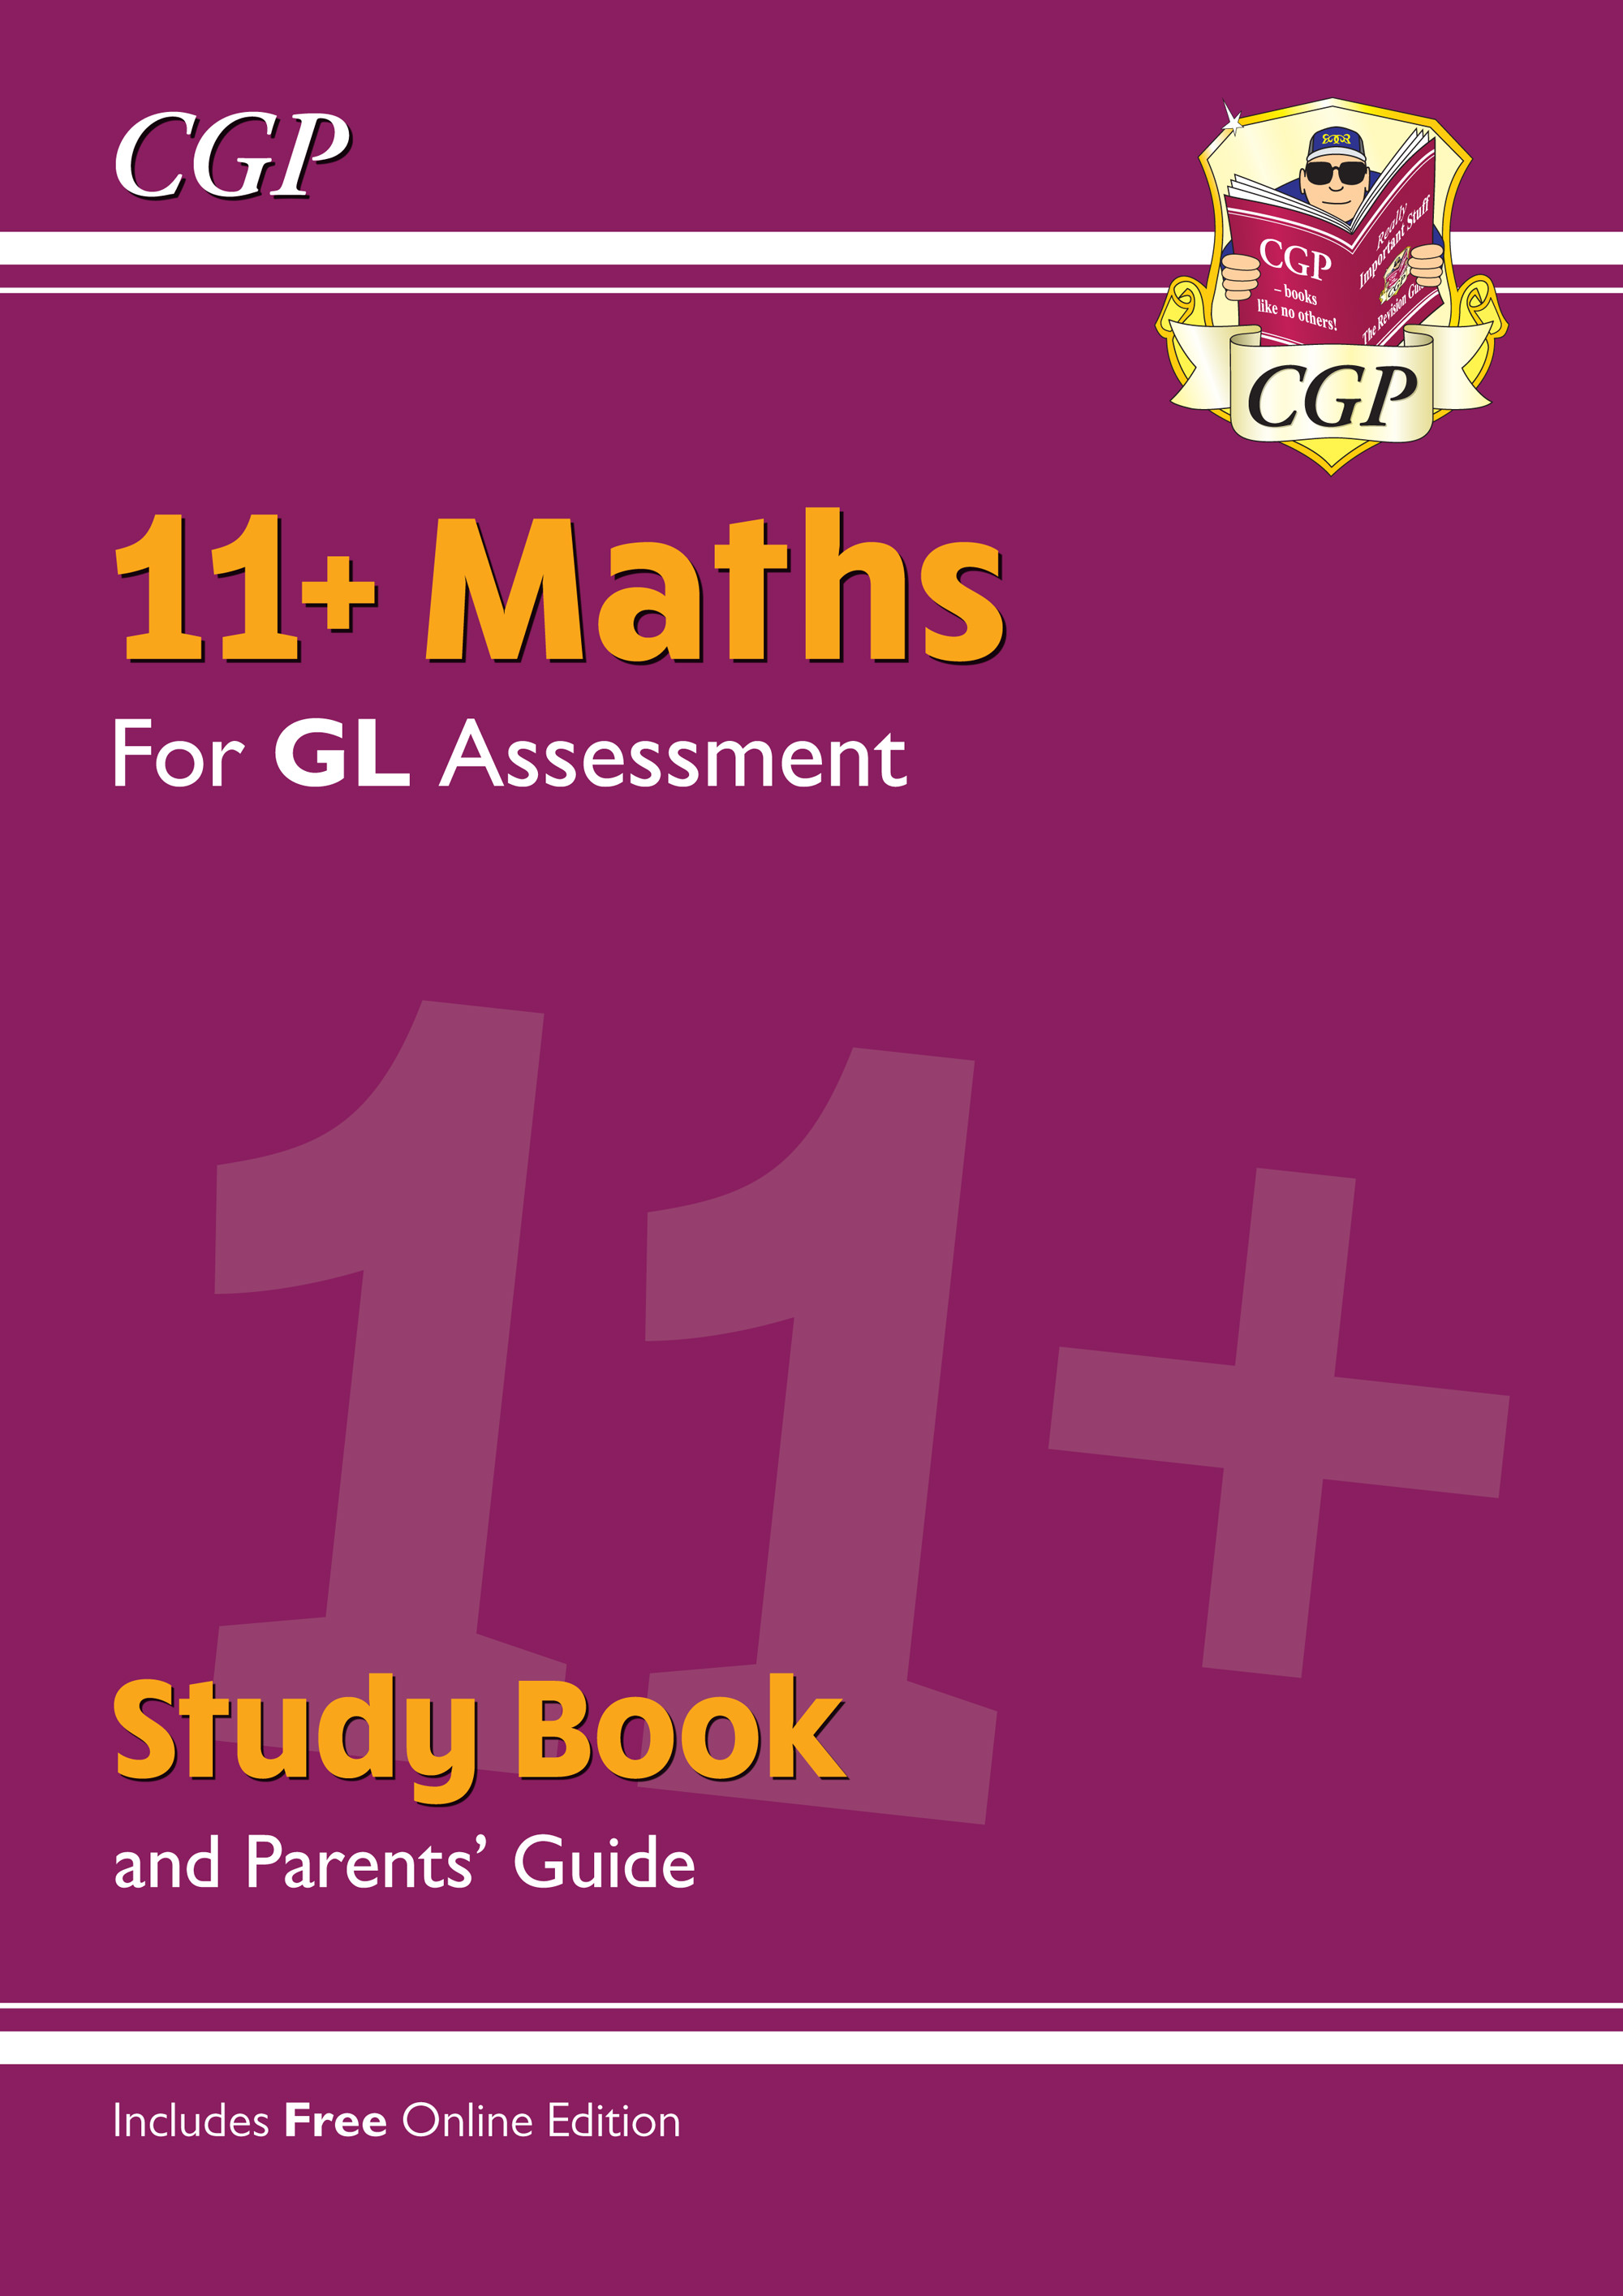 MHRE2 - 11+ GL Maths Study Book (with Parents' Guide & Online Edition)